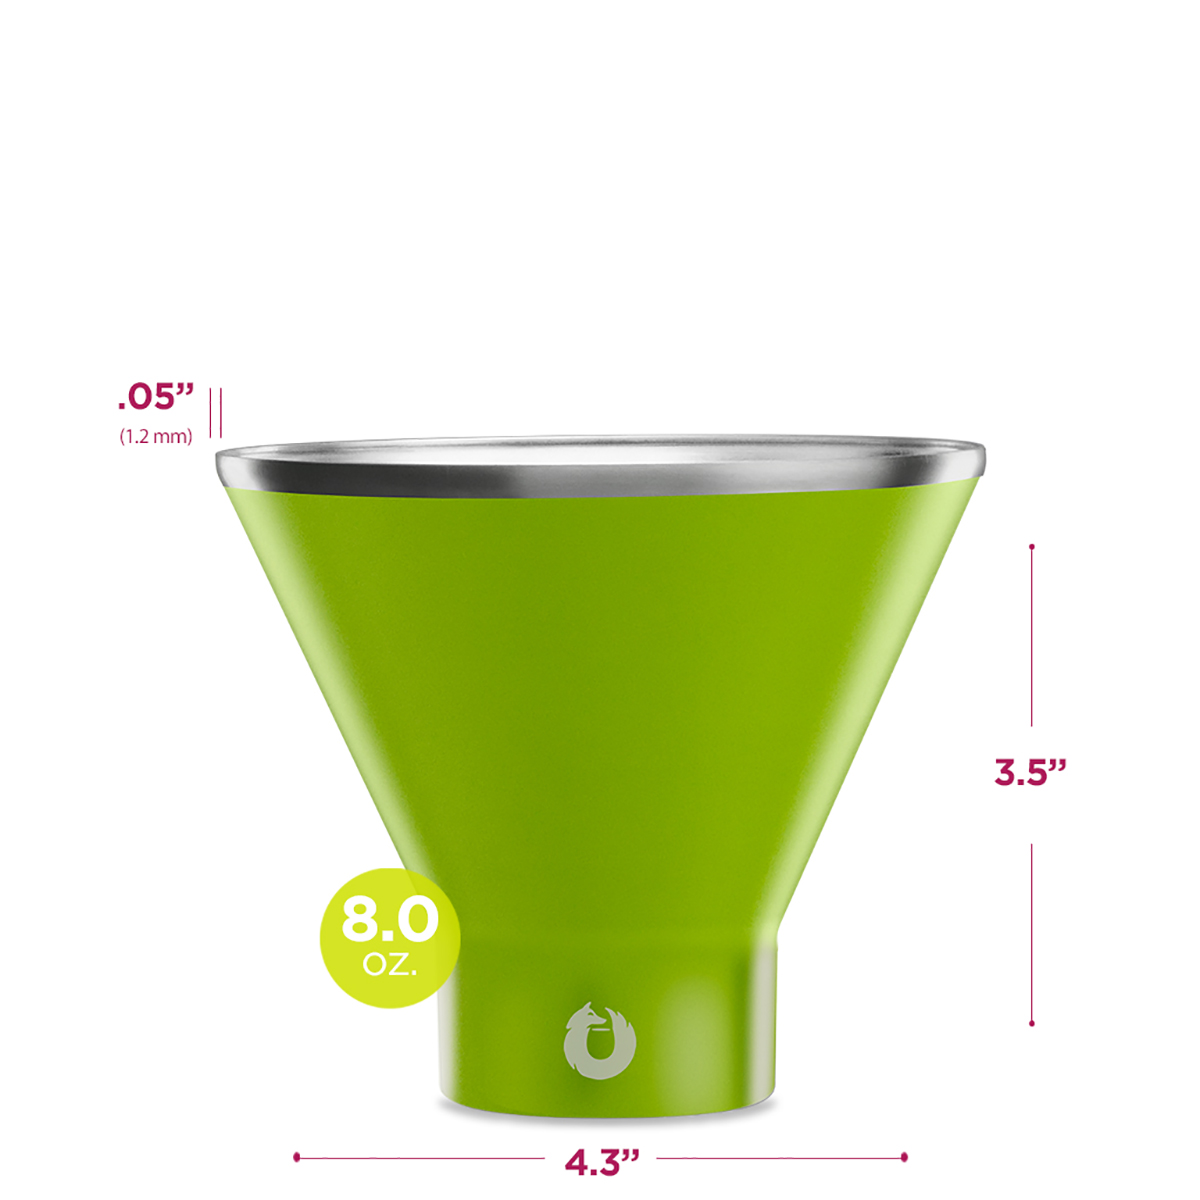 Stainless Steel Martini Glass in Lime - Dimensions